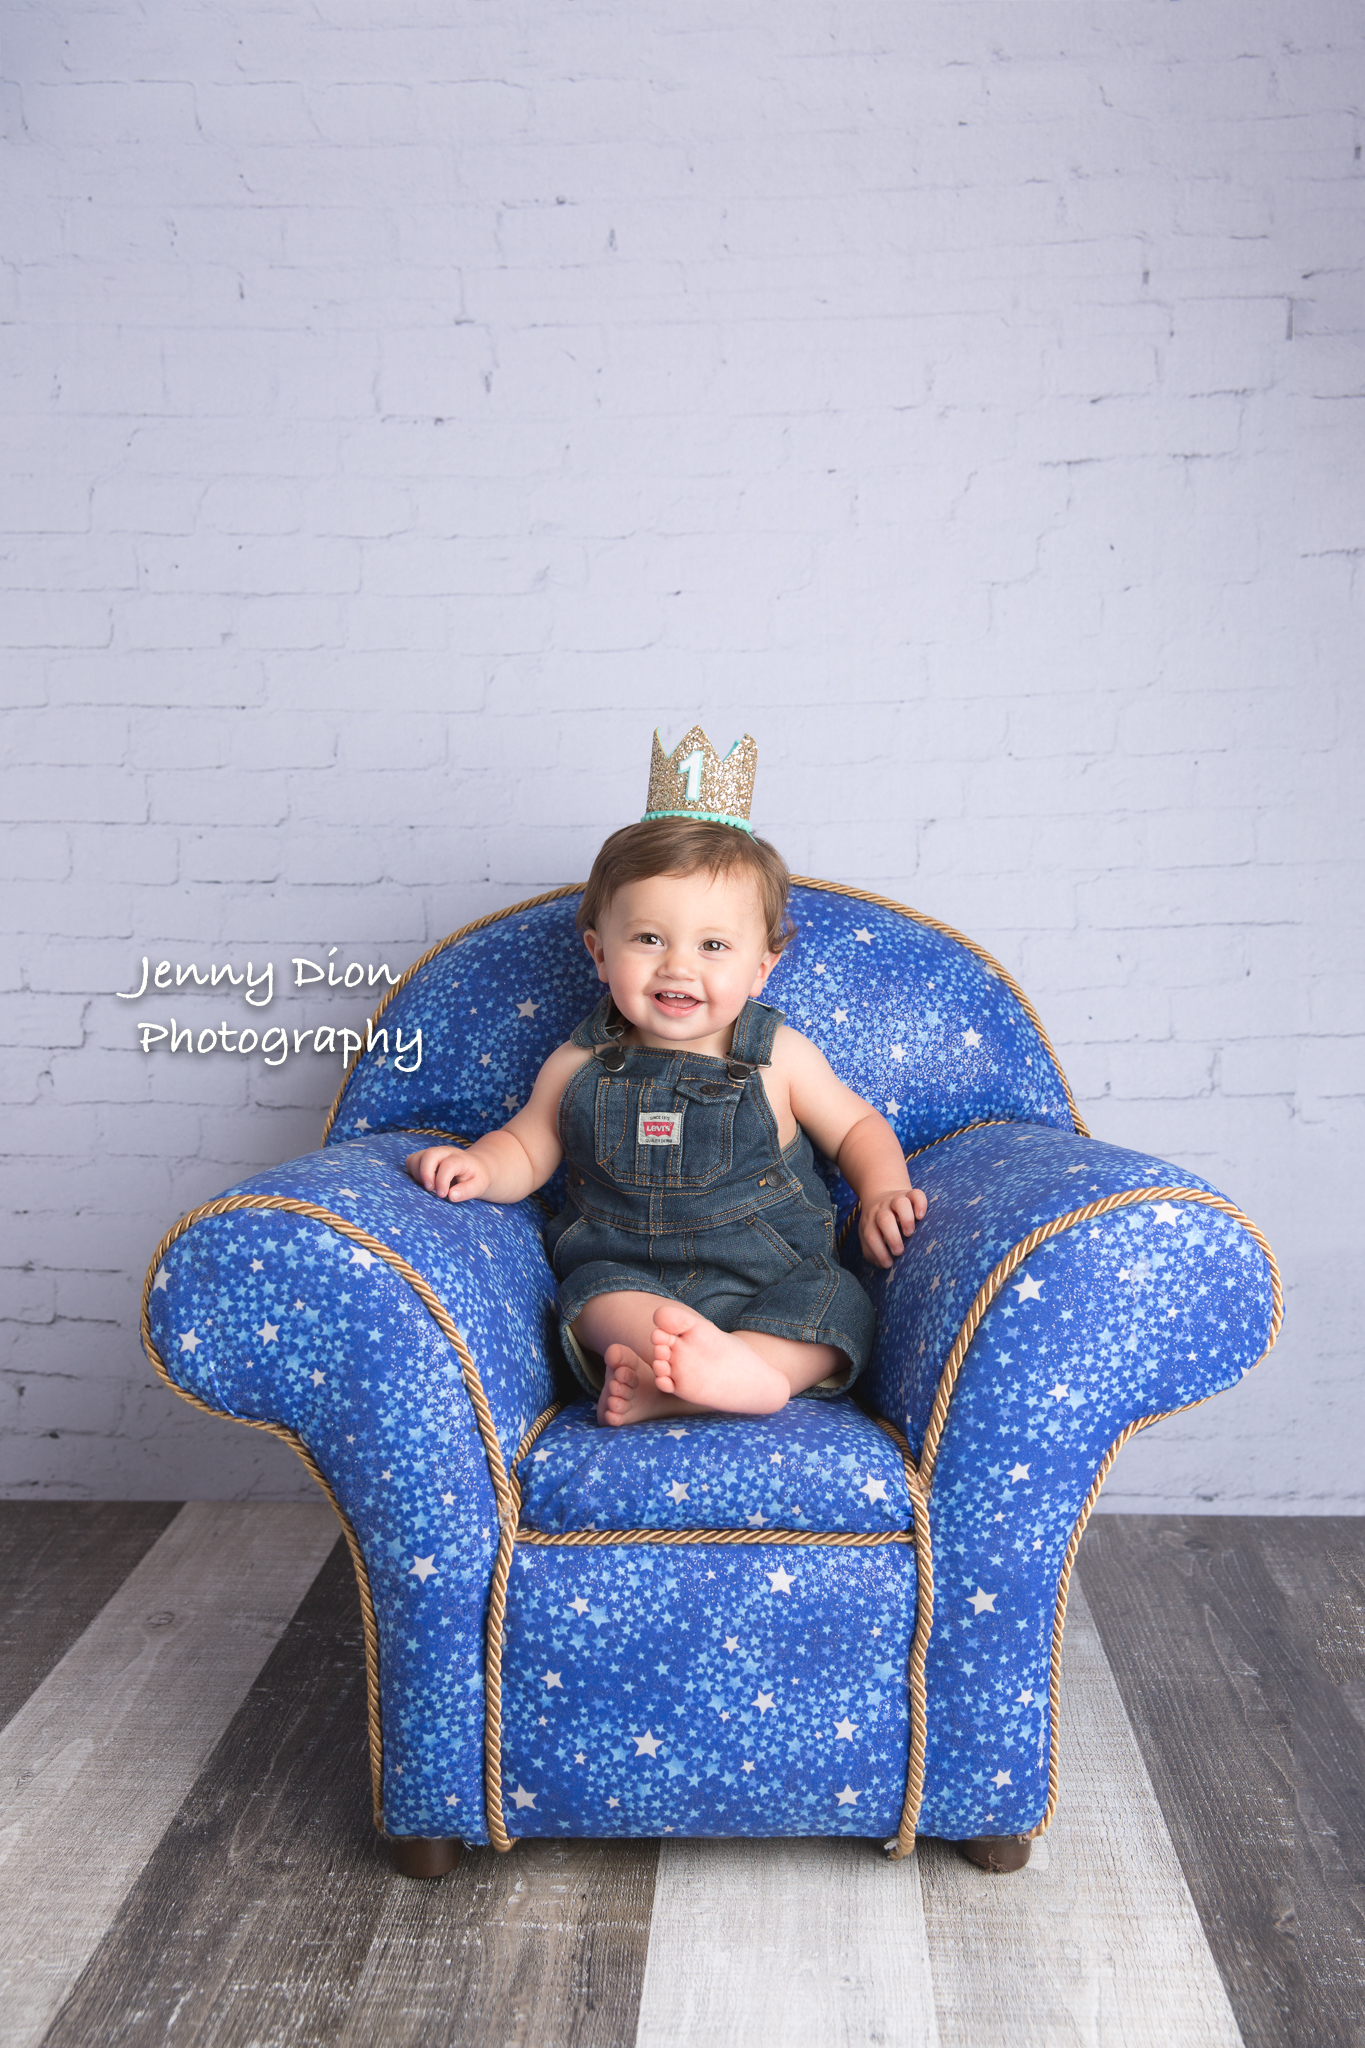 Grandma made this special chair for him. He looks like a king in his throne, doesn't he?